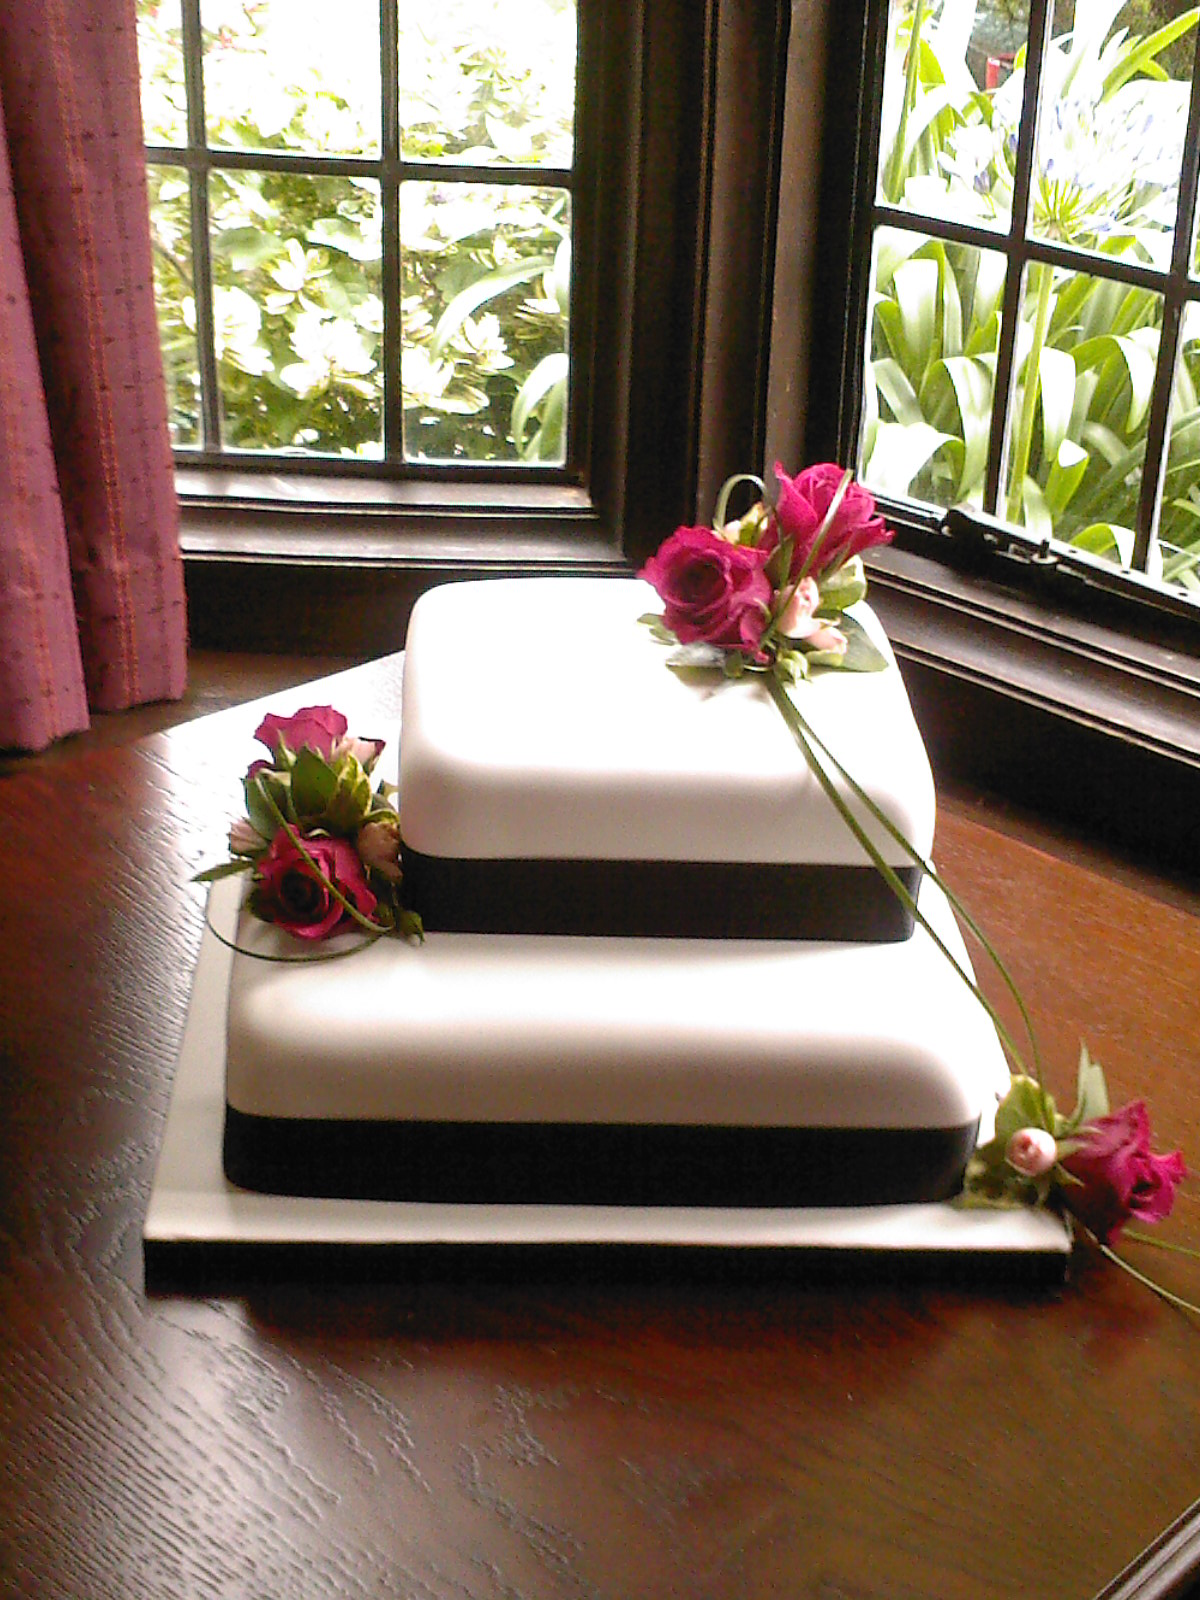 2 Tier Square Wedding Cake With Fresh Flowers Susie s Cakes